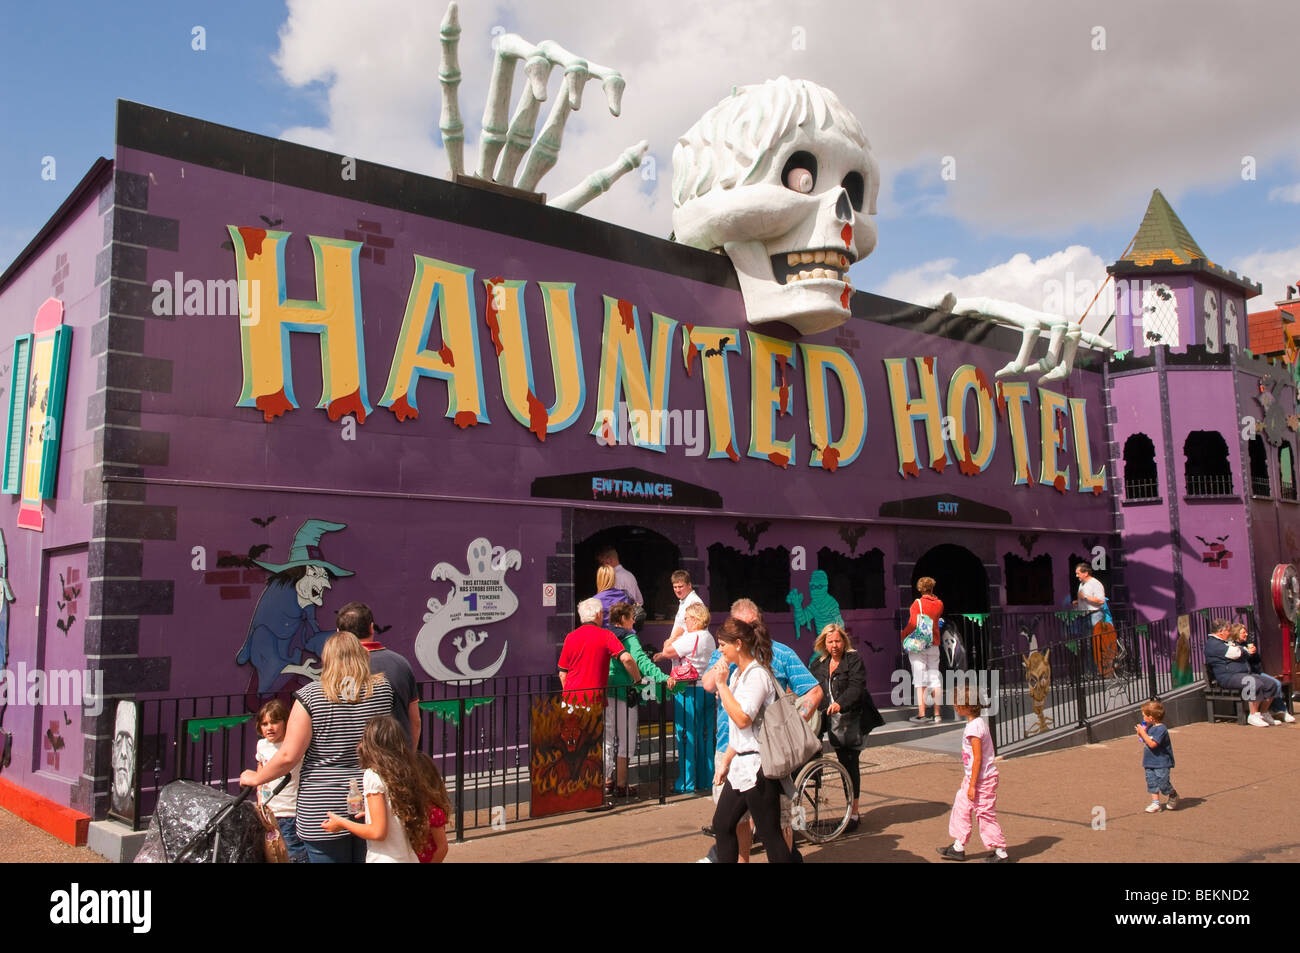 The Haunted Hotel at the Pleasure Beach in Great Yarmouth,Norfolk,Uk - Stock Image